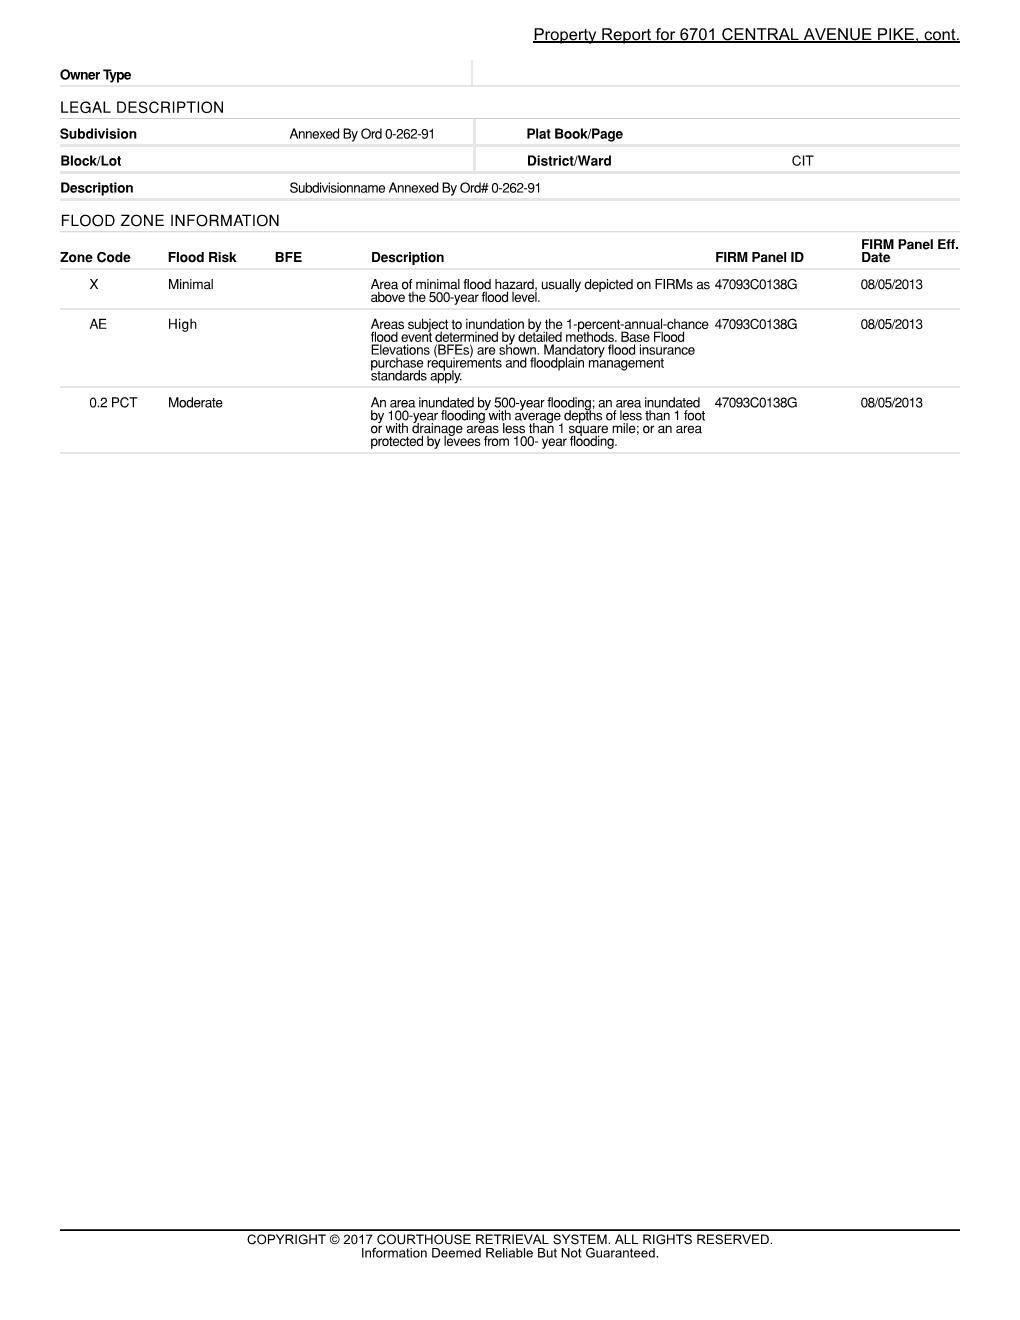 CRS-Property-Report-for-6701-CENTRAL-AVE